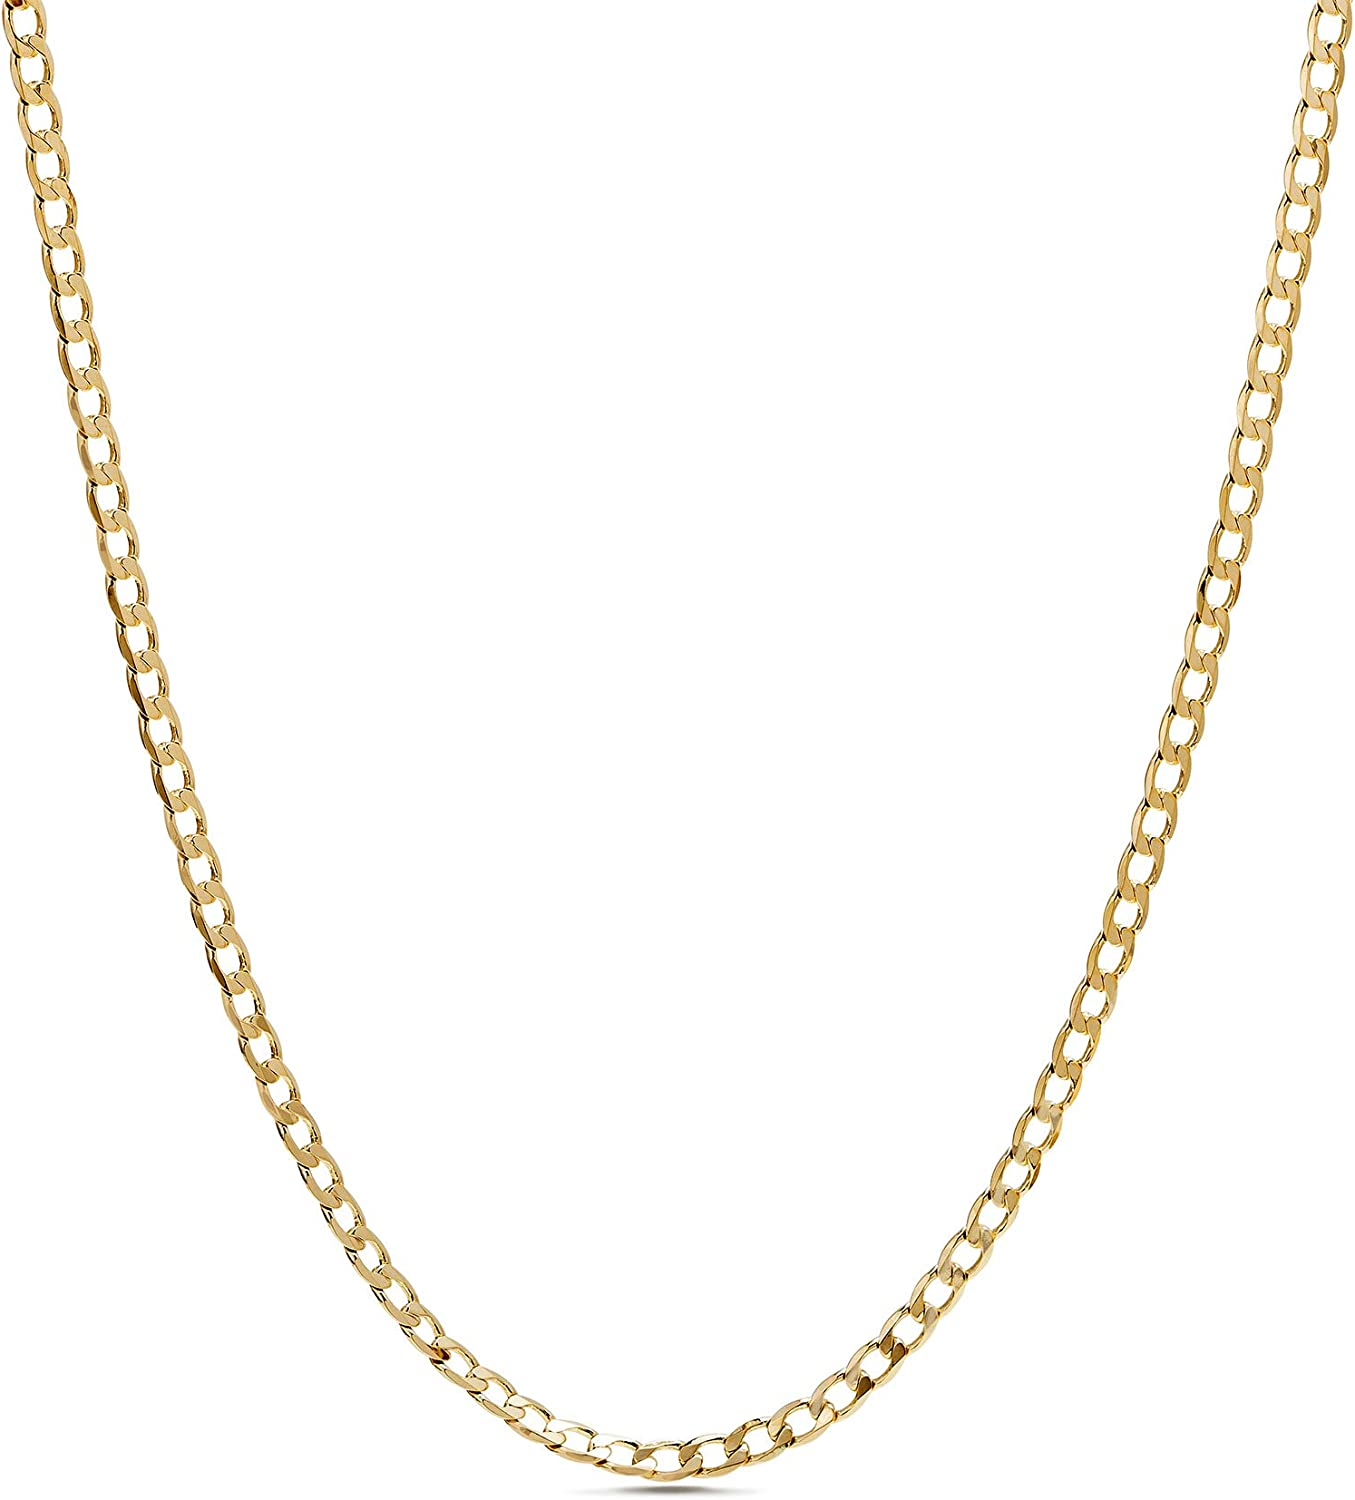 Nautica 1mm - 3mm Curb Chain Necklace for Men or Women in Yellow Gold Plated Brass